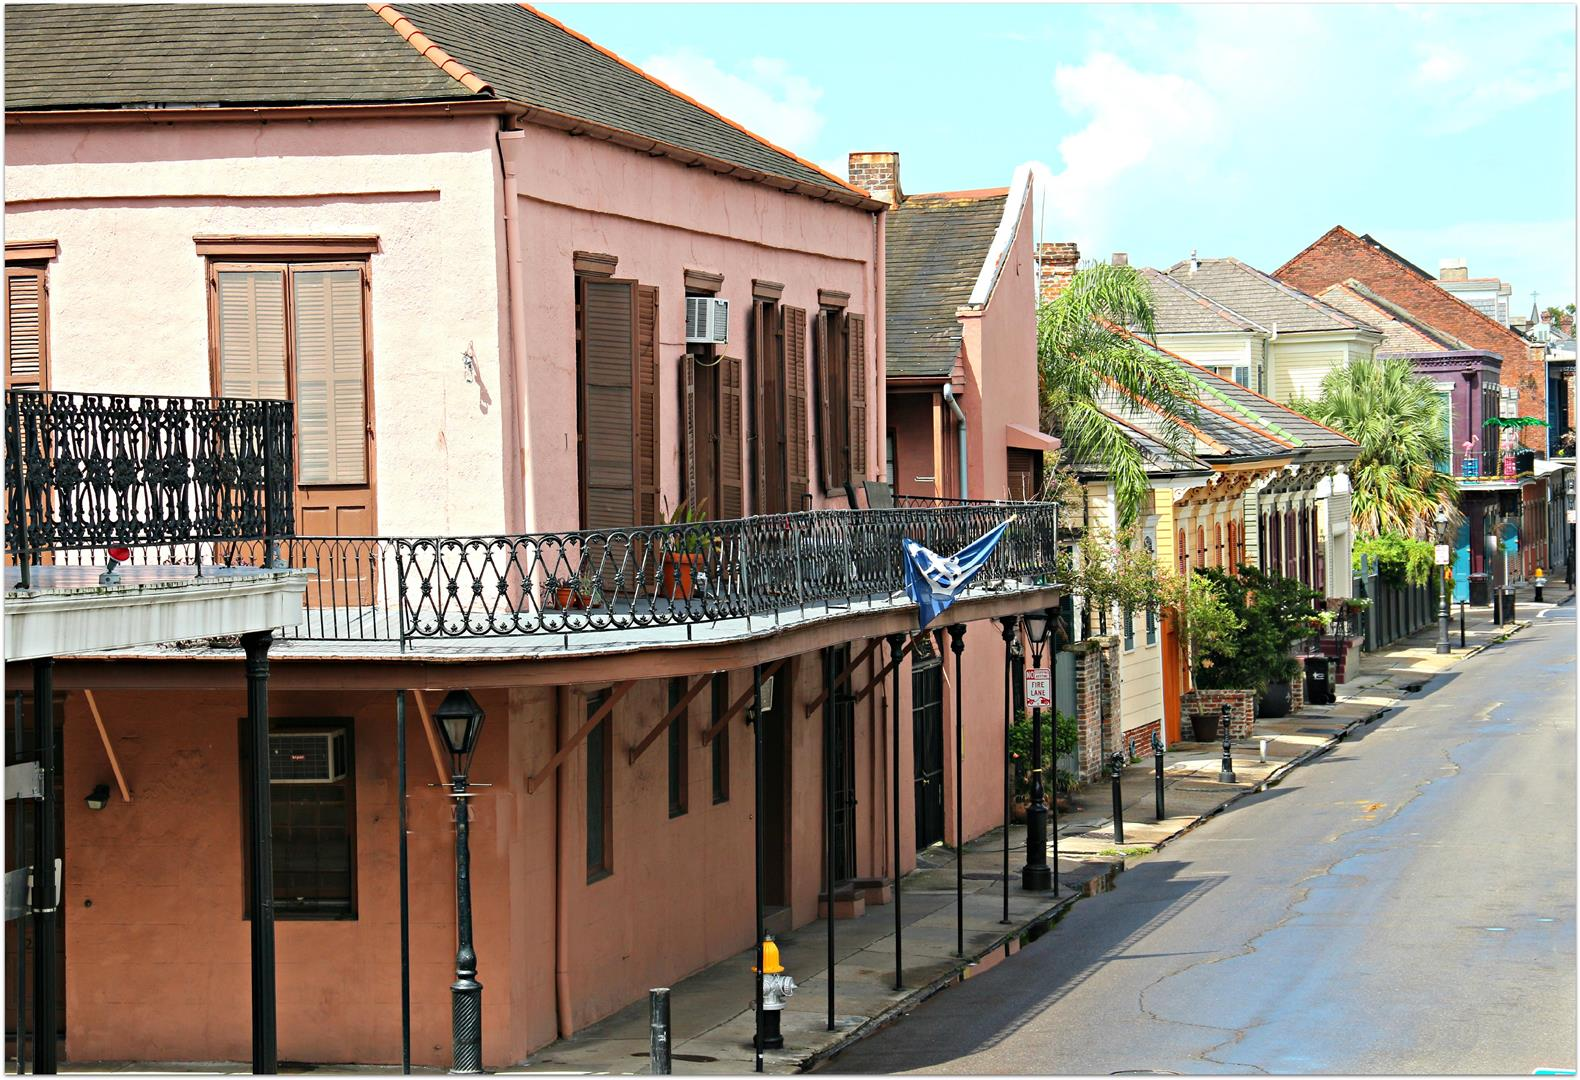 BarracksBalconyView,NewOrleansFrenchQuarter.jpg